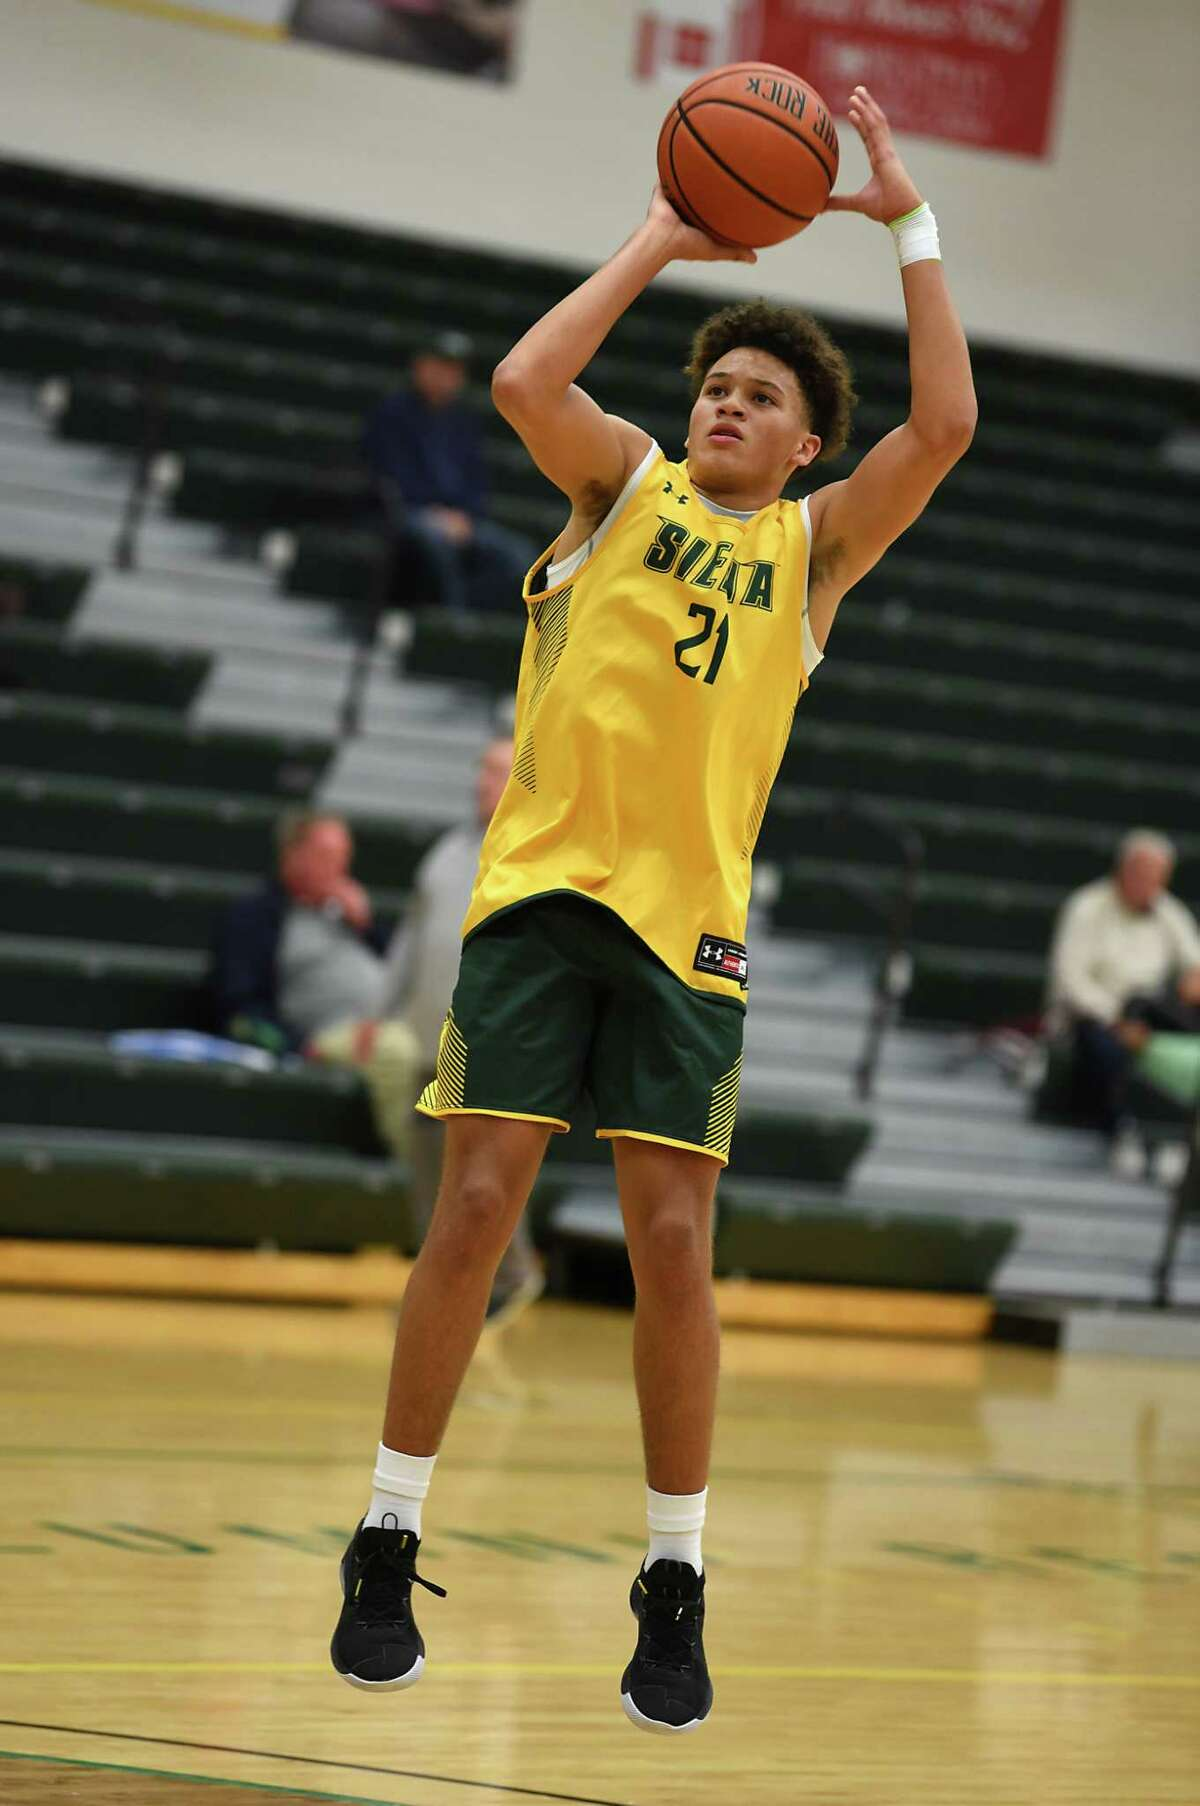 Jordan King goes up for a shot as Siena men's basketball holds an open practice for fans at the Alumni Recreation Center at Siena College on Monday, Oct. 7, 2019 in Loudonville, N.Y. (Lori Van Buren/Times Union)